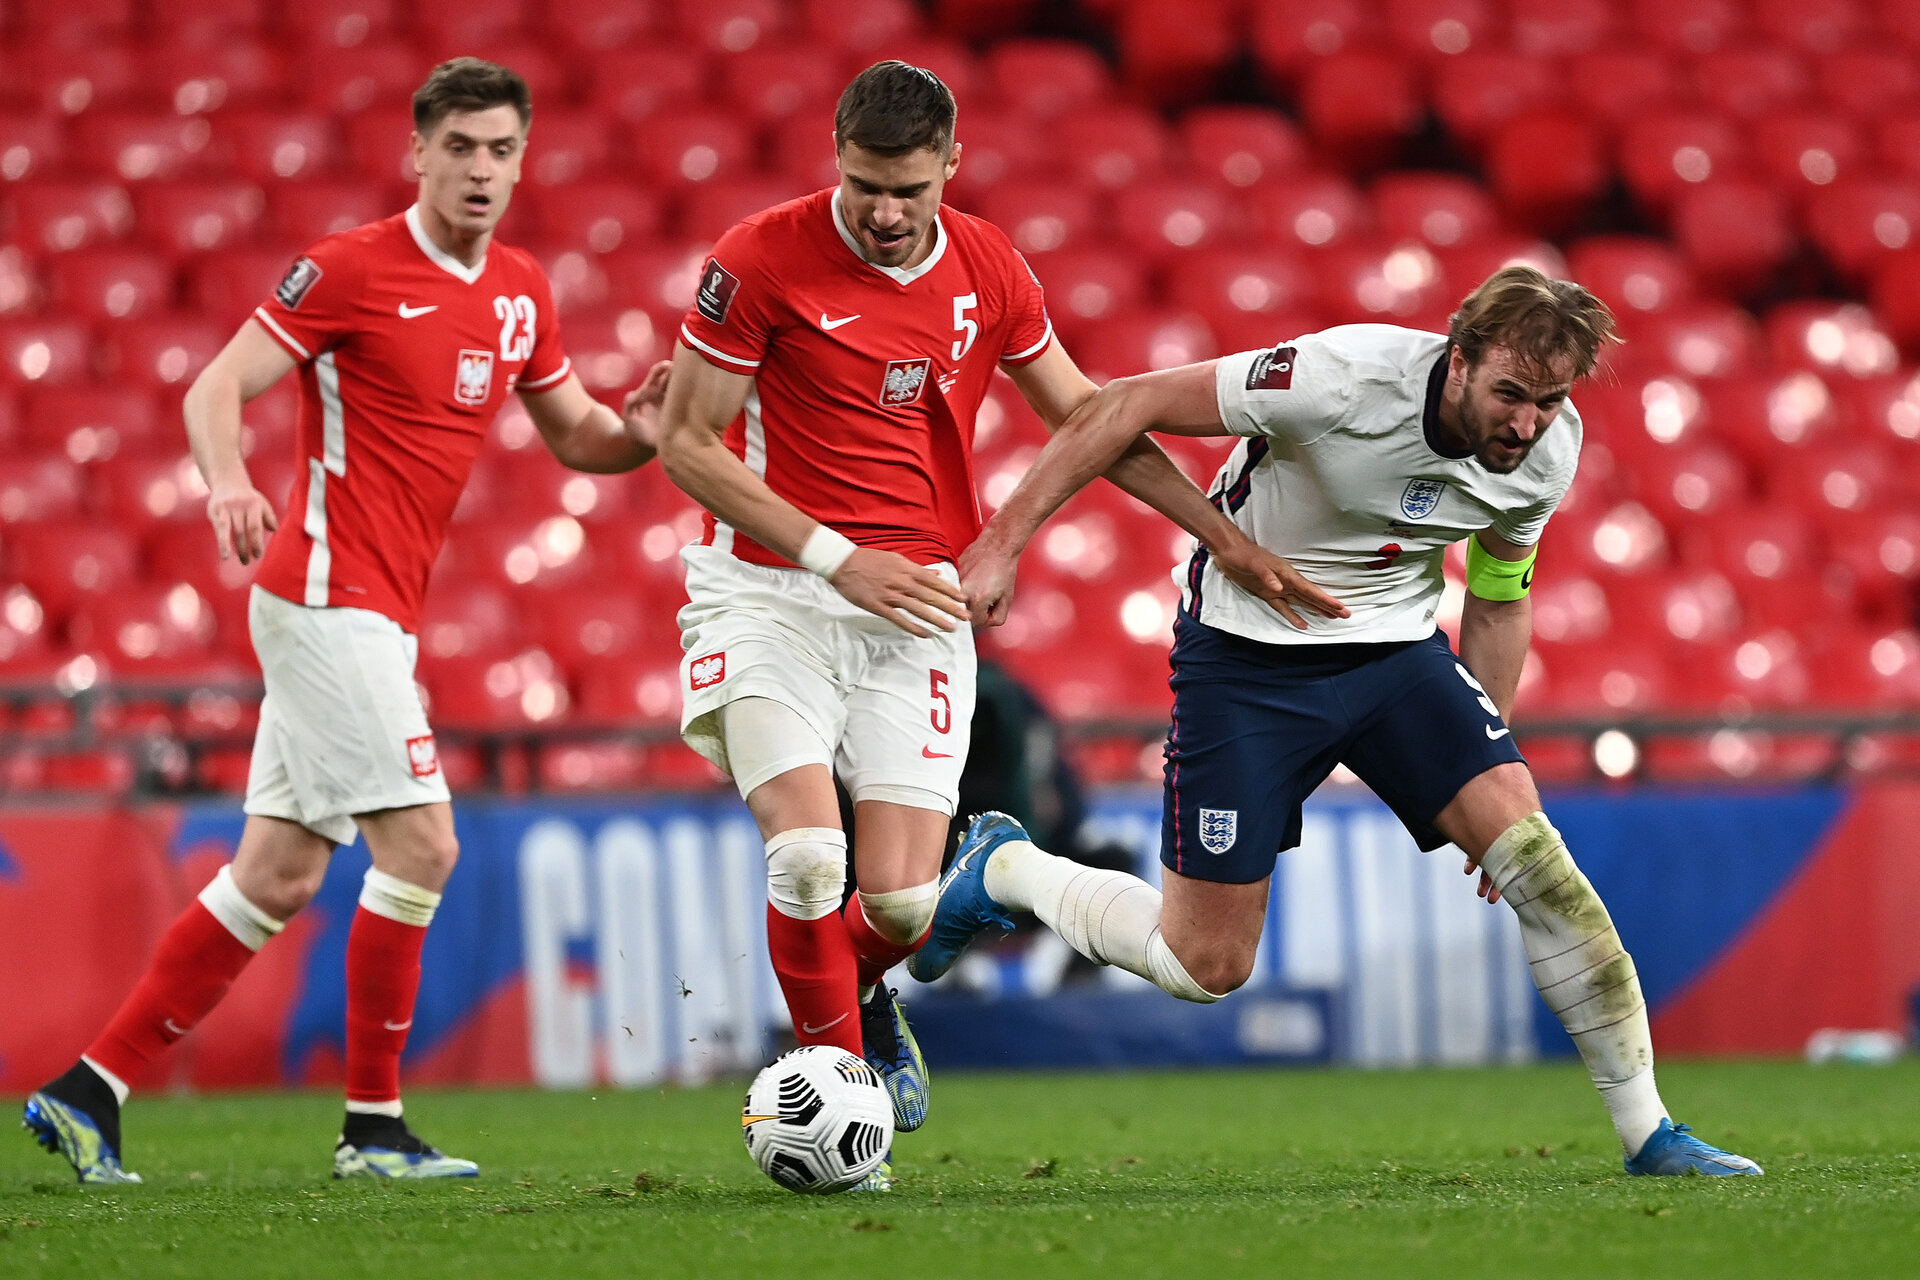 LONDON, ENGLAND - MARCH 31: Harry Kane of England is challenged by Jan Bednarek of Poland during the FIFA World Cup 2022 Qatar qualifying match between England and Poland on March 31, 2021 at Wembley Stadium in London, England. Sporting stadiums around the UK remain under strict restrictions due to the Coronavirus Pandemic as Government social distancing laws prohibit fans inside venues resulting in games being played behind closed doors. (Photo by Andy Rain - Pool/Getty Images)